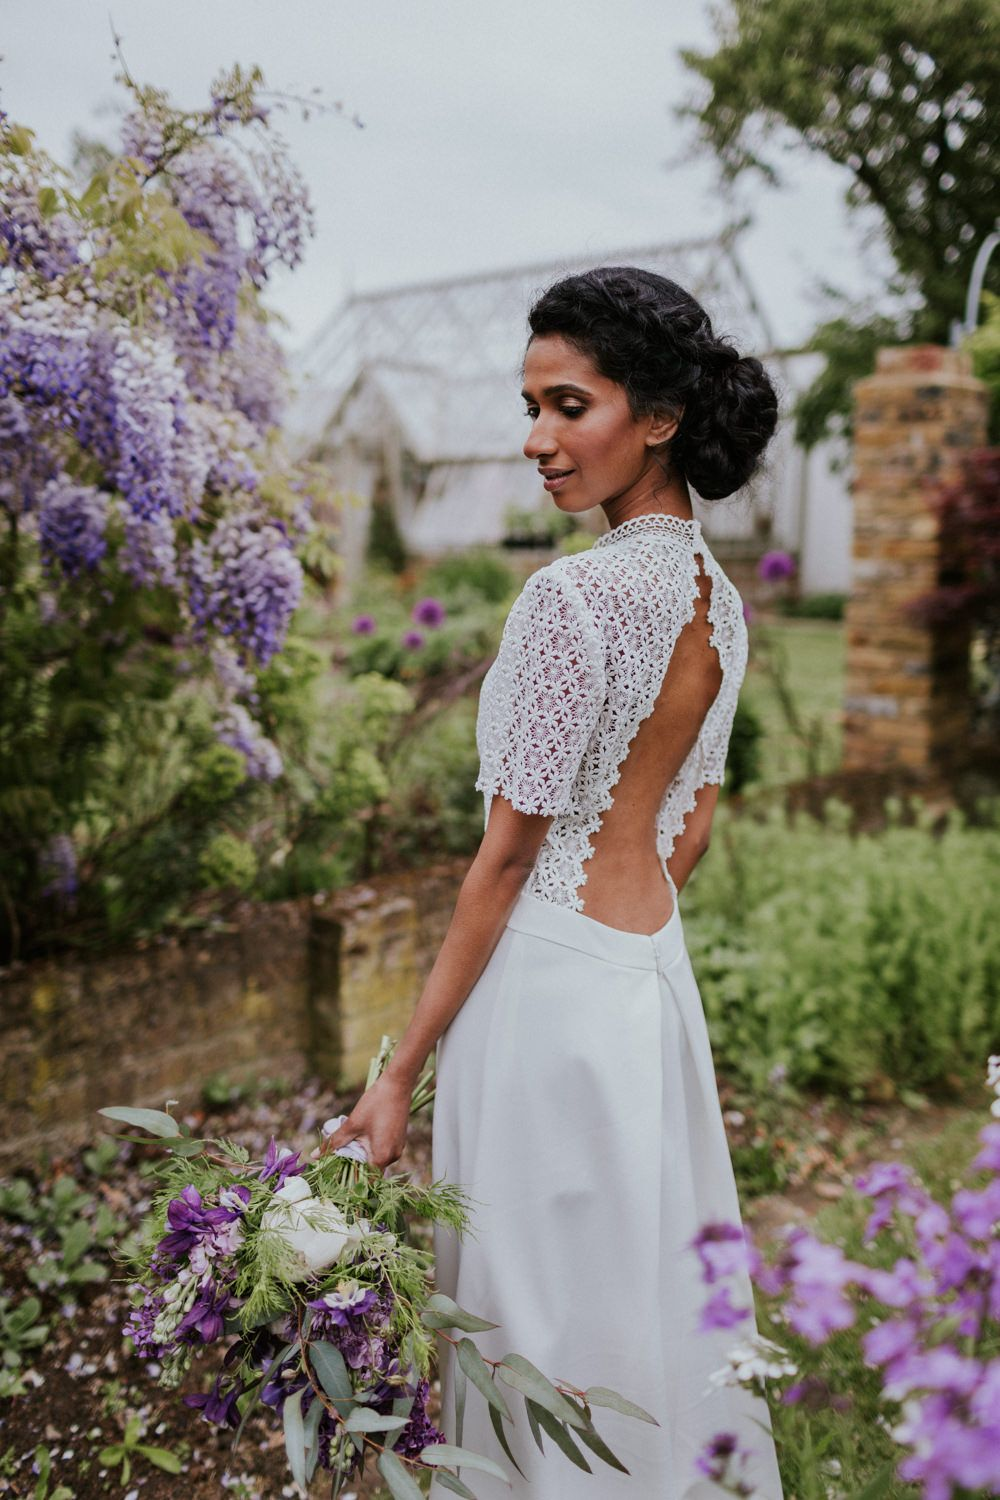 Violet Flower Filled Secret English Garden Inspiration in a Glasshouse Styled by The Timeless Stylist